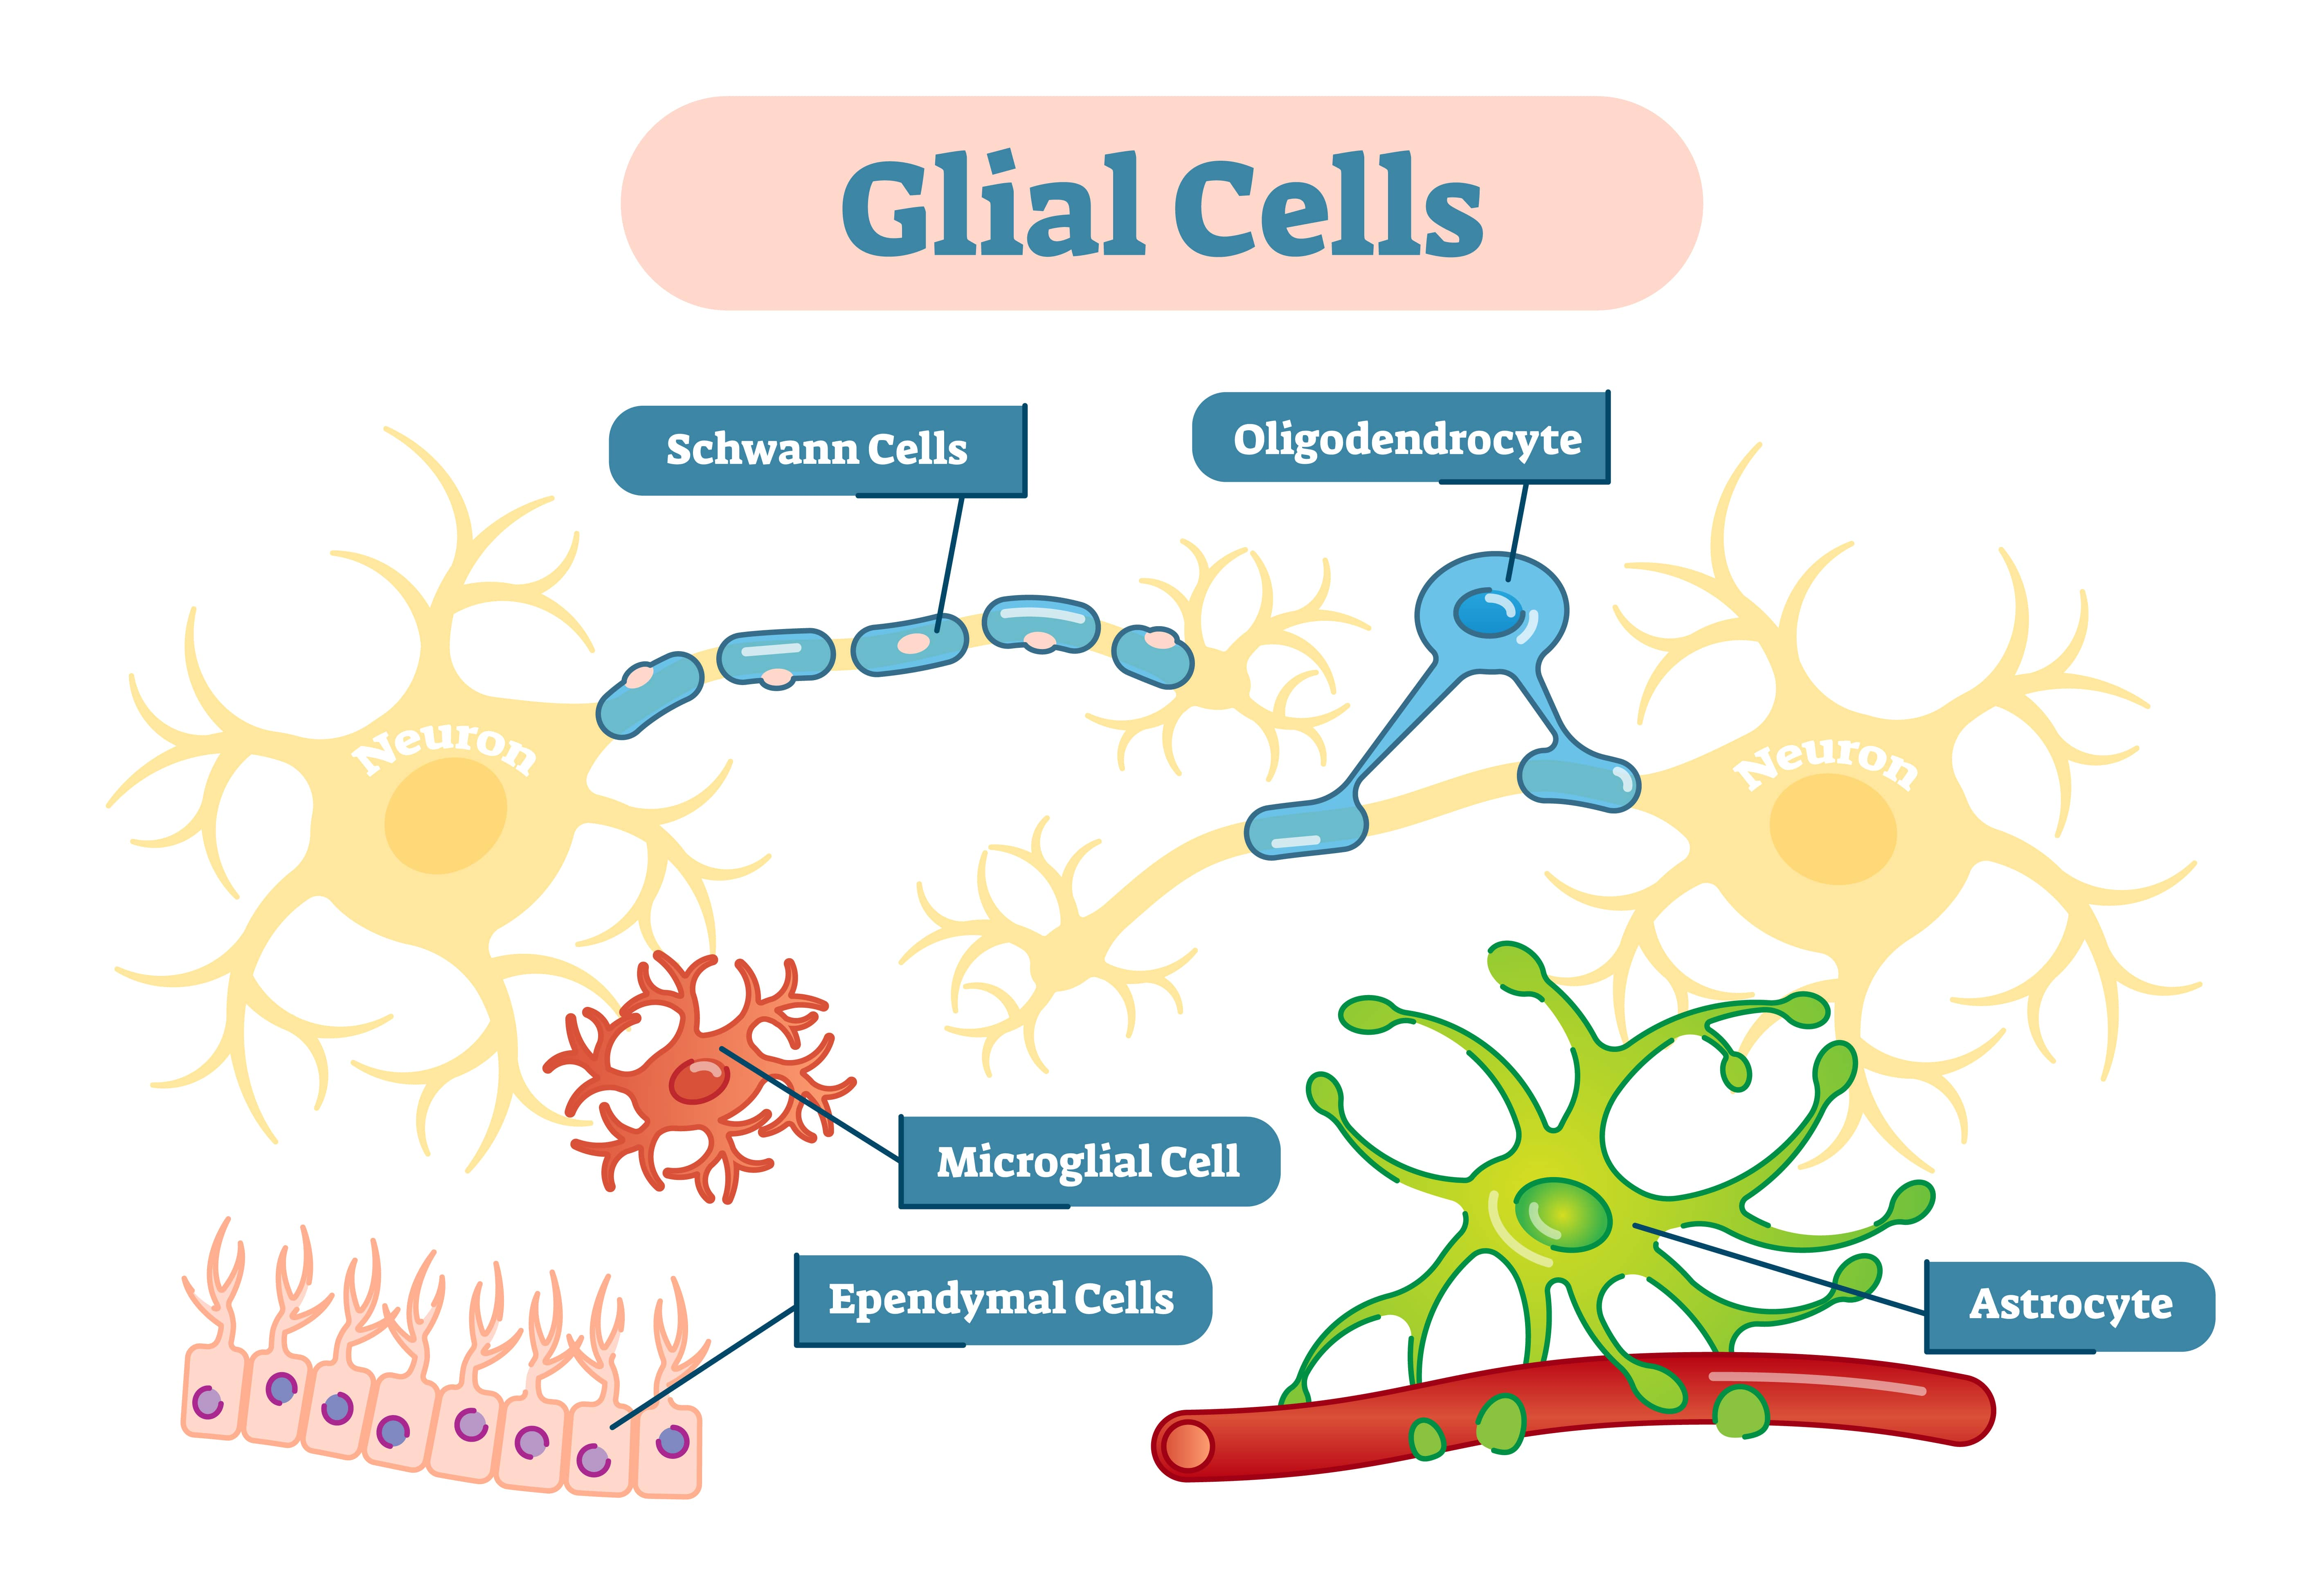 glia cells in the CNS: astrocytes, microglial, and oligodendrocytes.